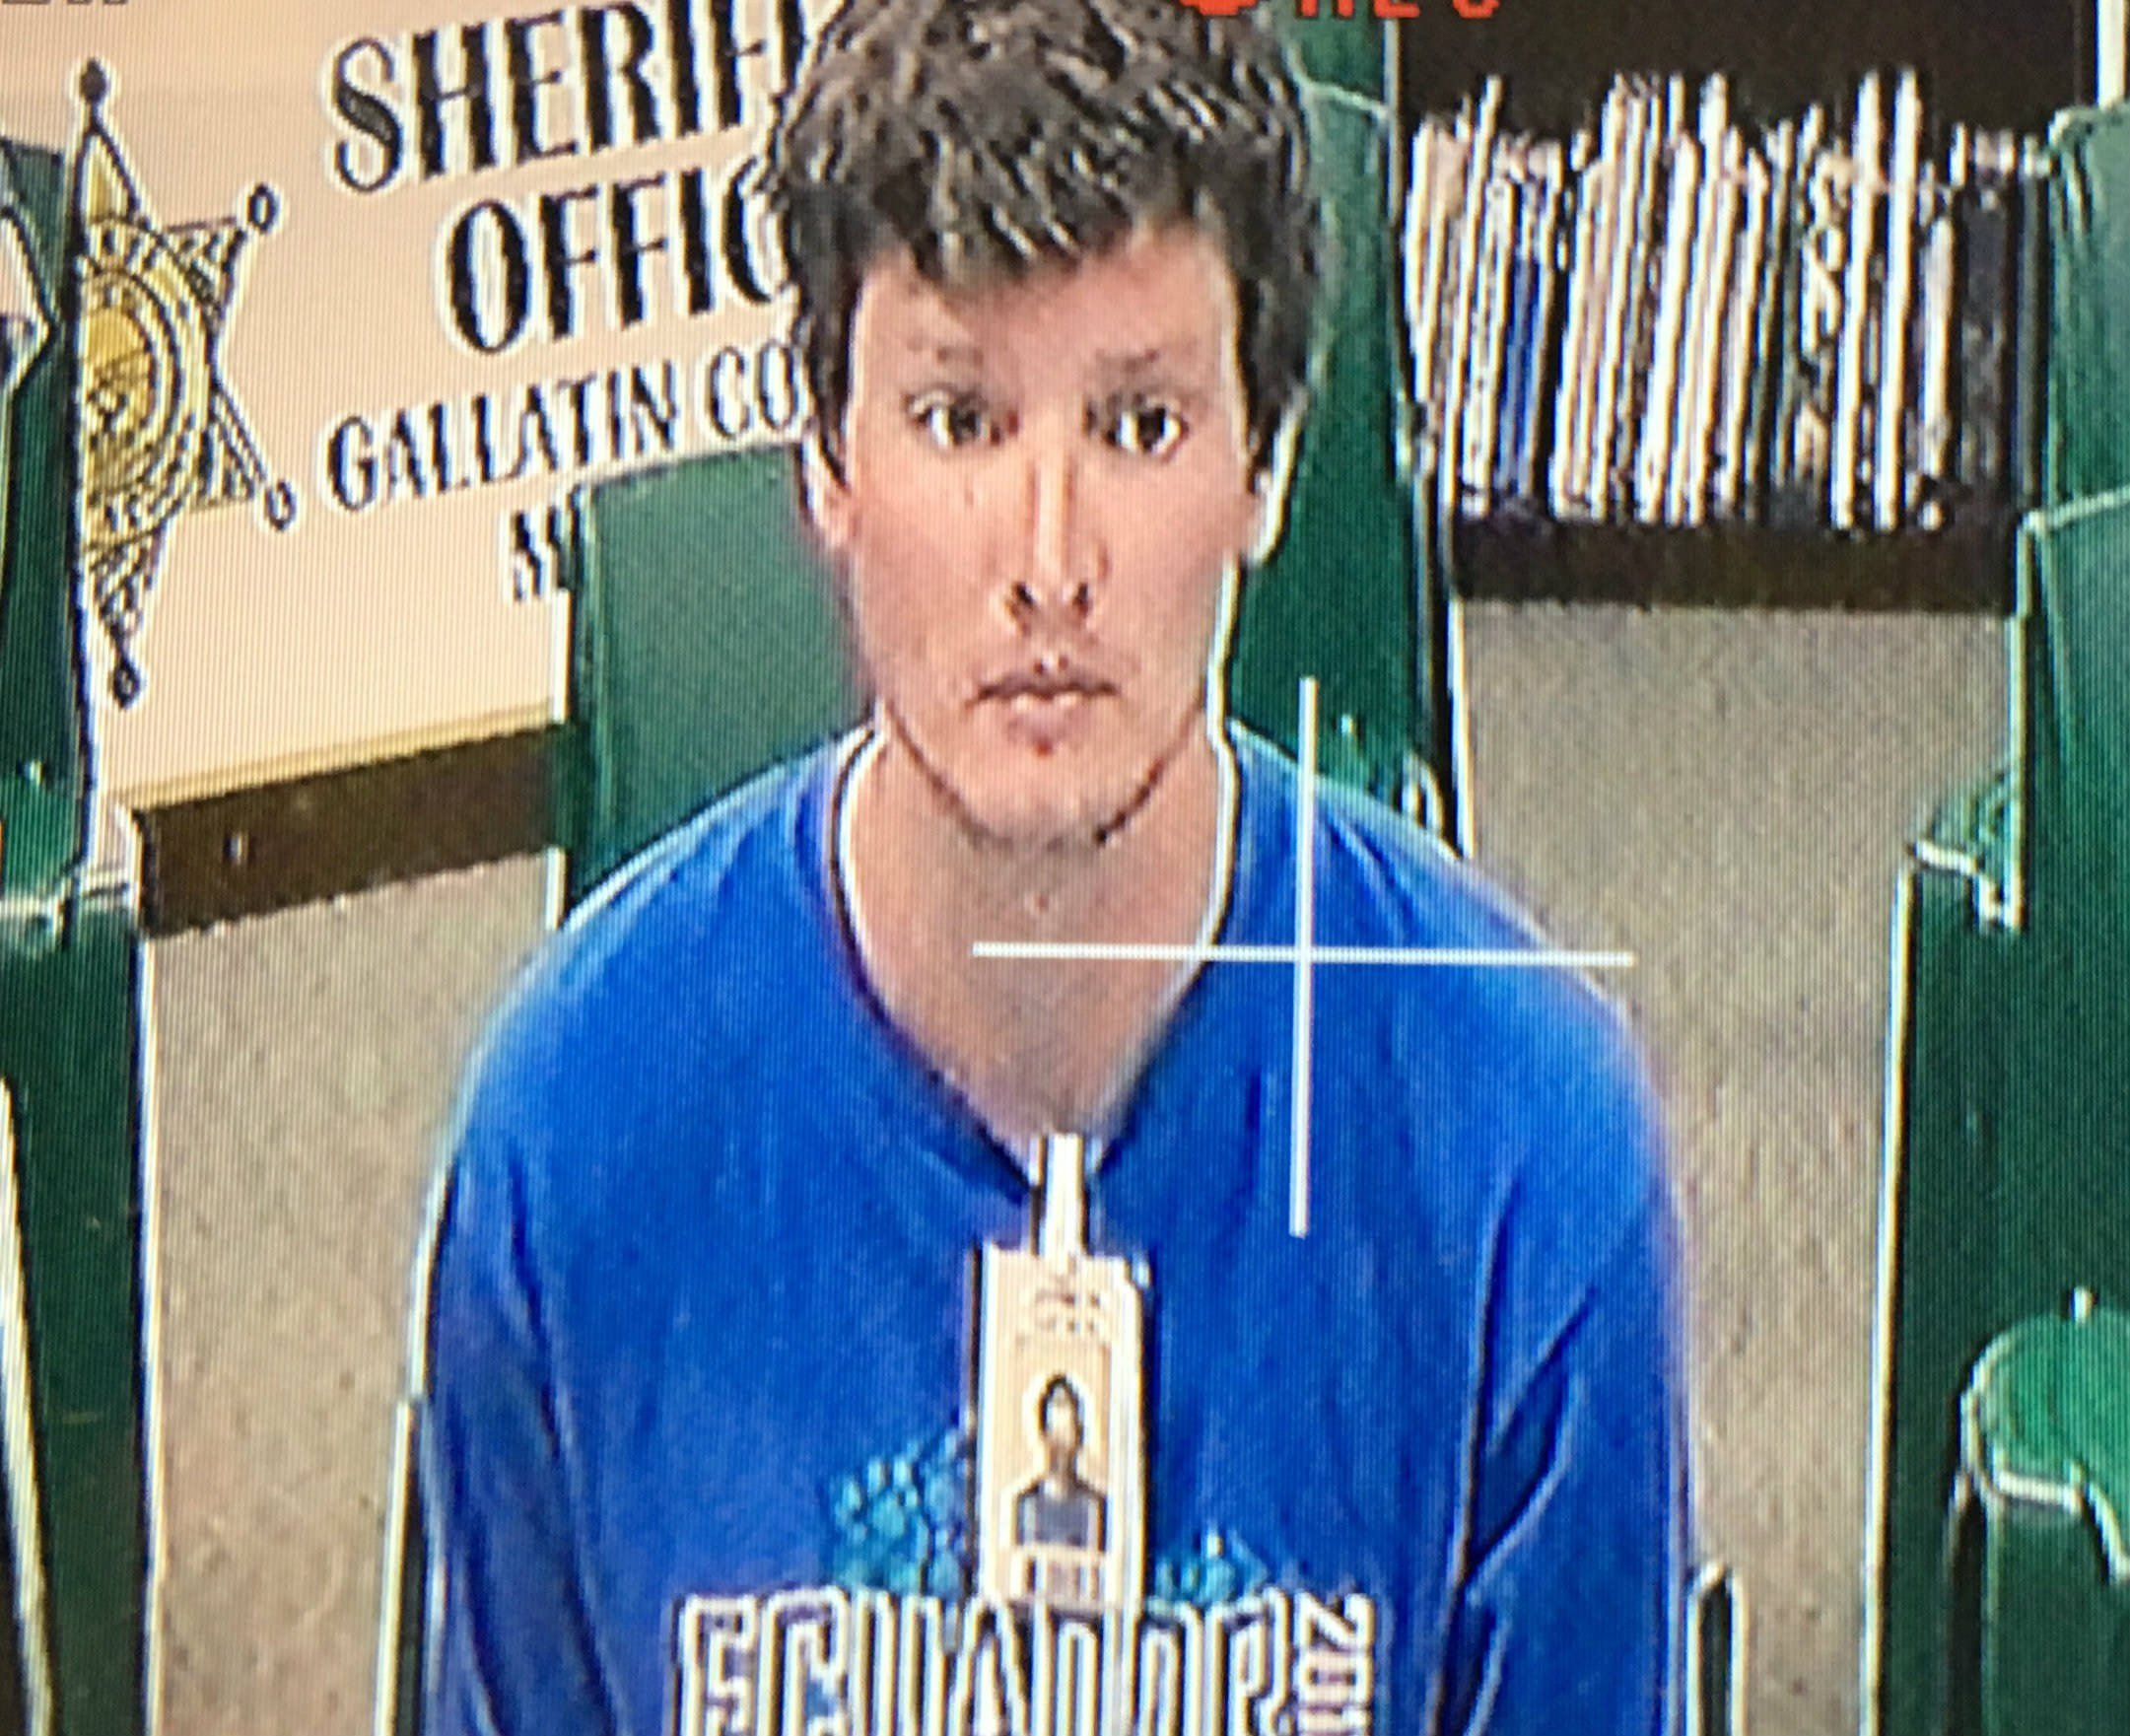 Lucas Keith Johnson, 23, is charged with negligent vehicular homicide. (MTN News photo)